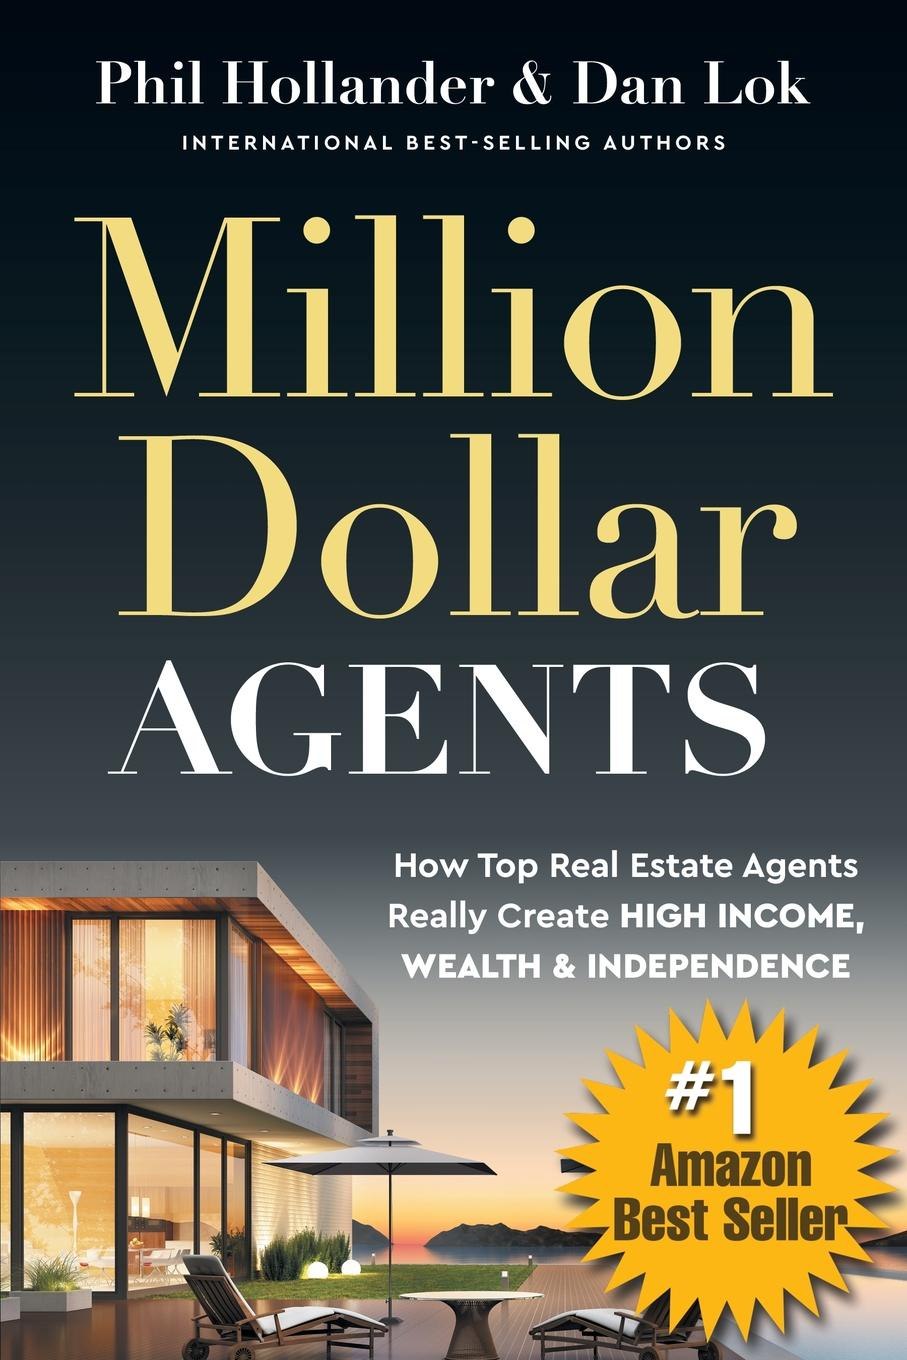 Phil Hollander, Dan Lok Million Dollar Agents. How Top Real Estate Agents Really Create HIGH INCOME, WEALTH & INDEPENDENCE tyler hicks g 209 fast spare time ways to build zero cash into 7 figures a year in real estate